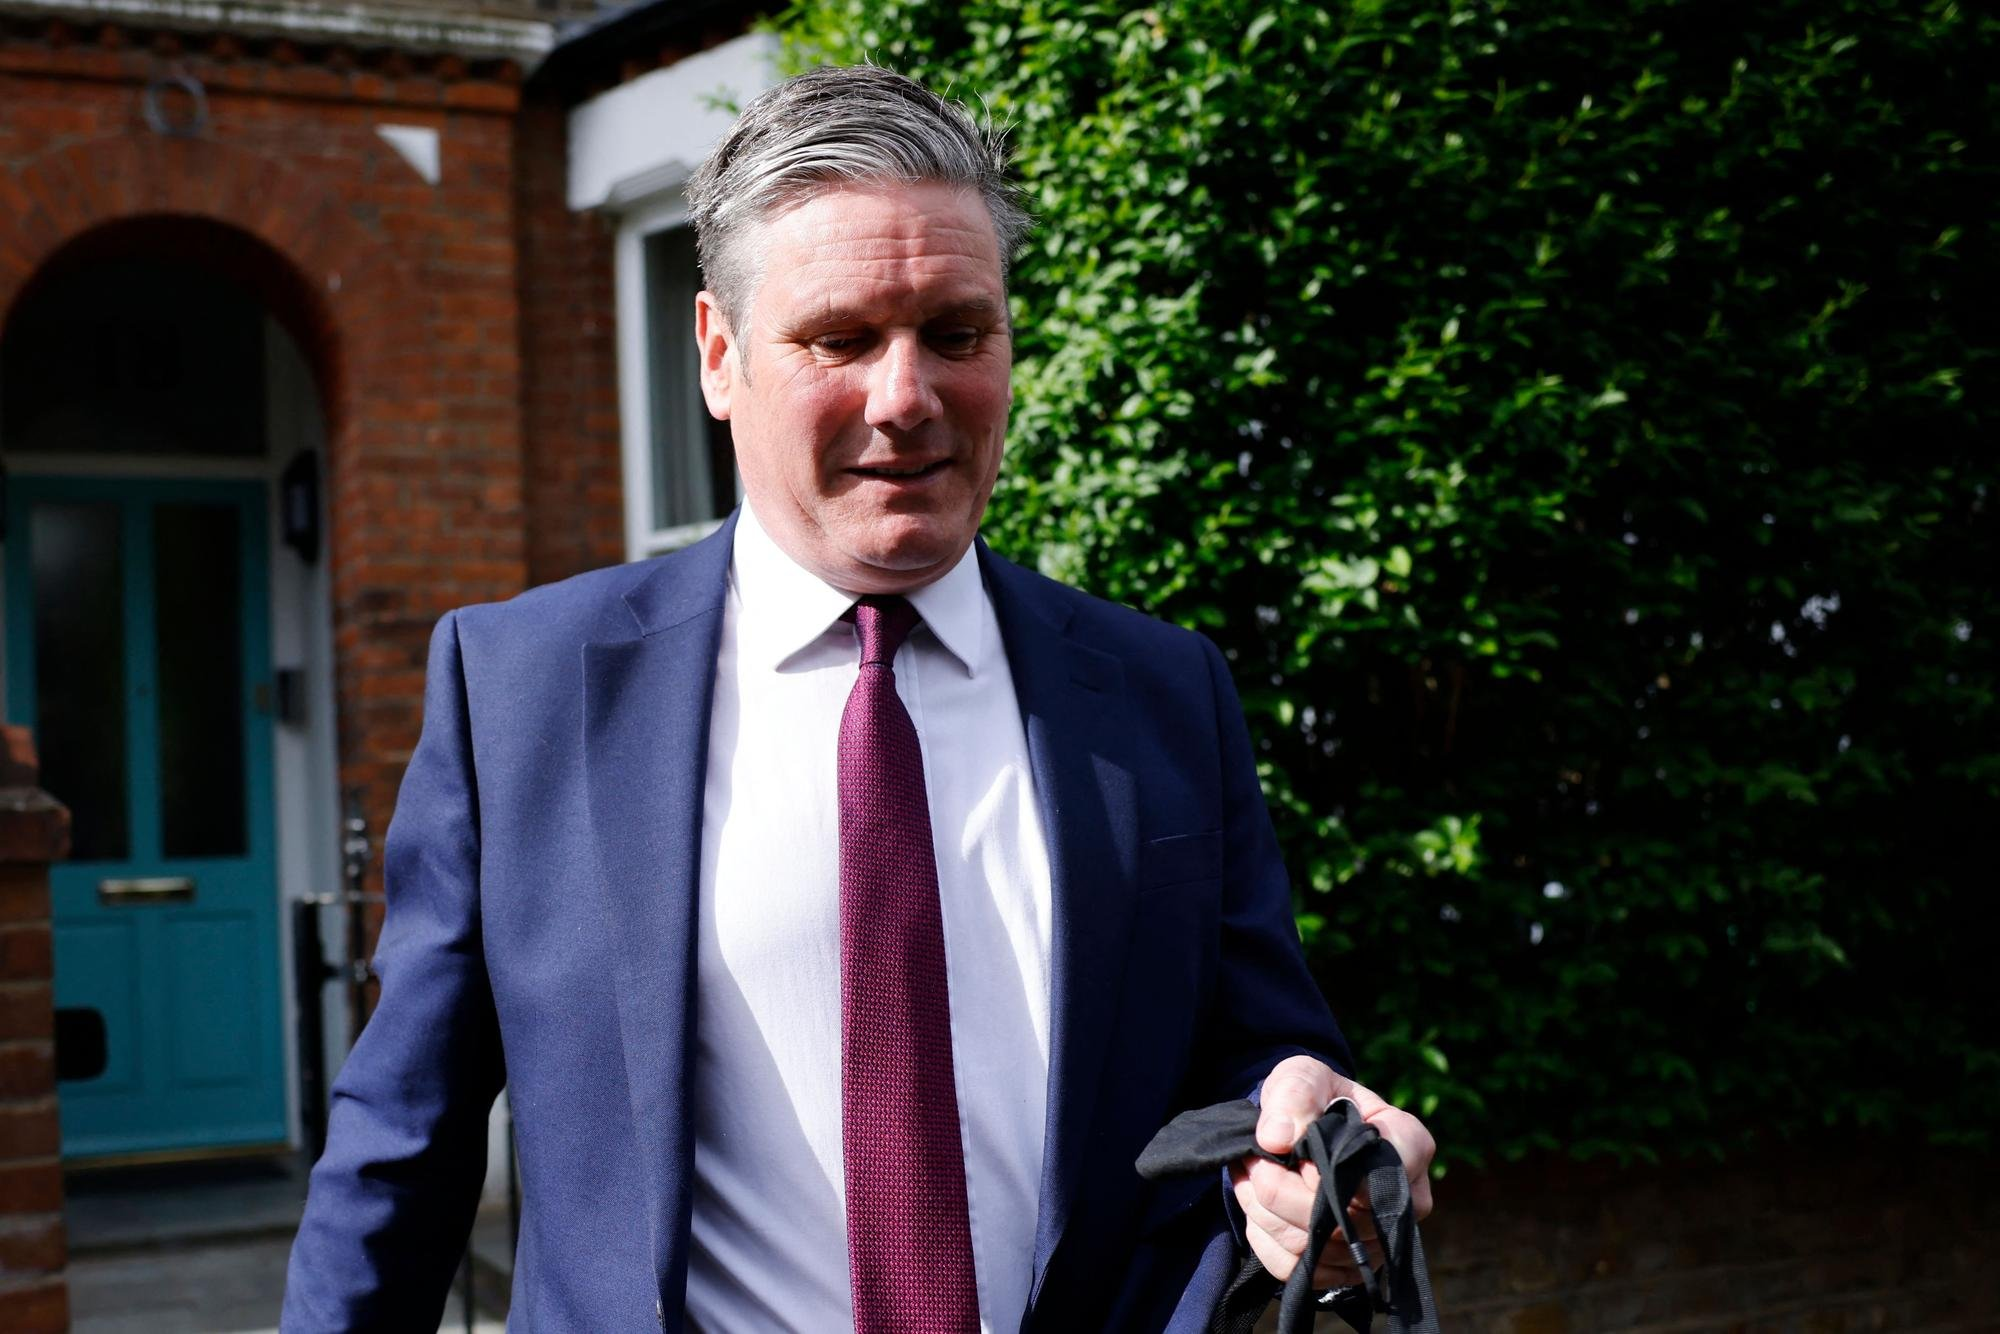 Sir Keir Starmer accepts 'full responsibility' for Labour's crushing election defeat